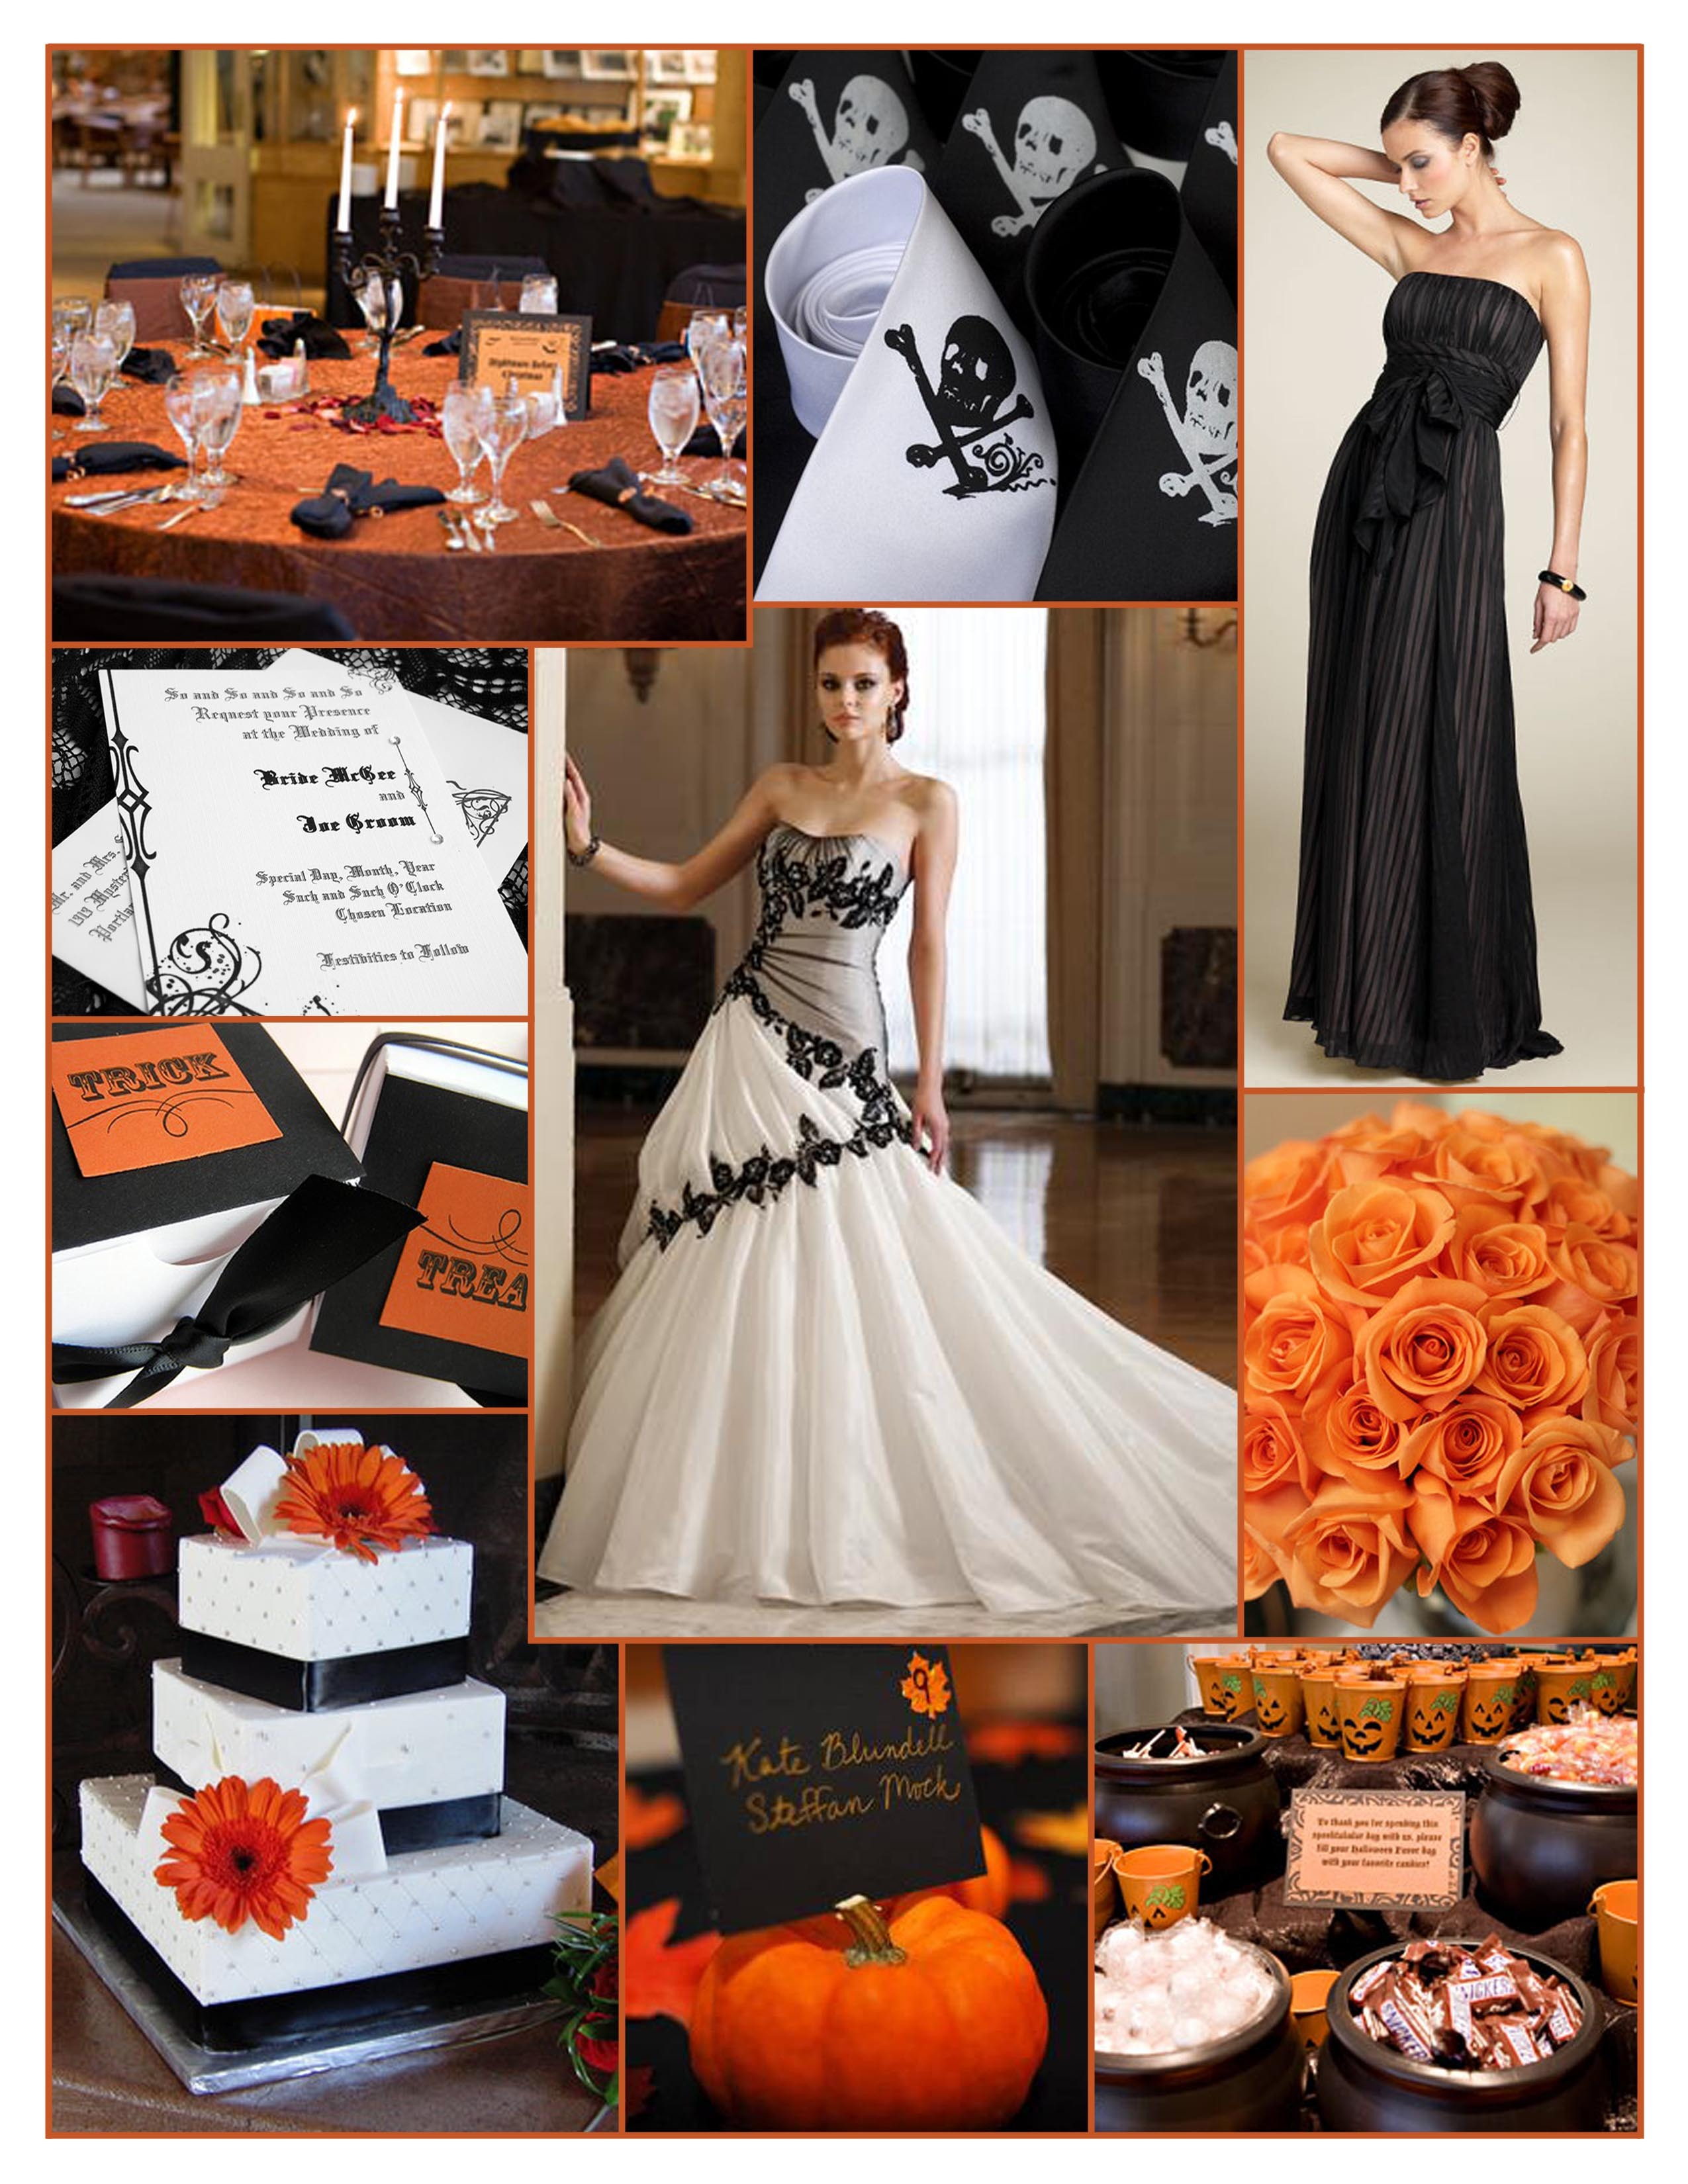 Ceremony, Inspiration, Flowers & Decor, Stationery, Cakes, orange, black, cake, Ceremony Flowers, Invitations, Flowers, Board, Halloween, Sophia Tolli, Bcbg max azria